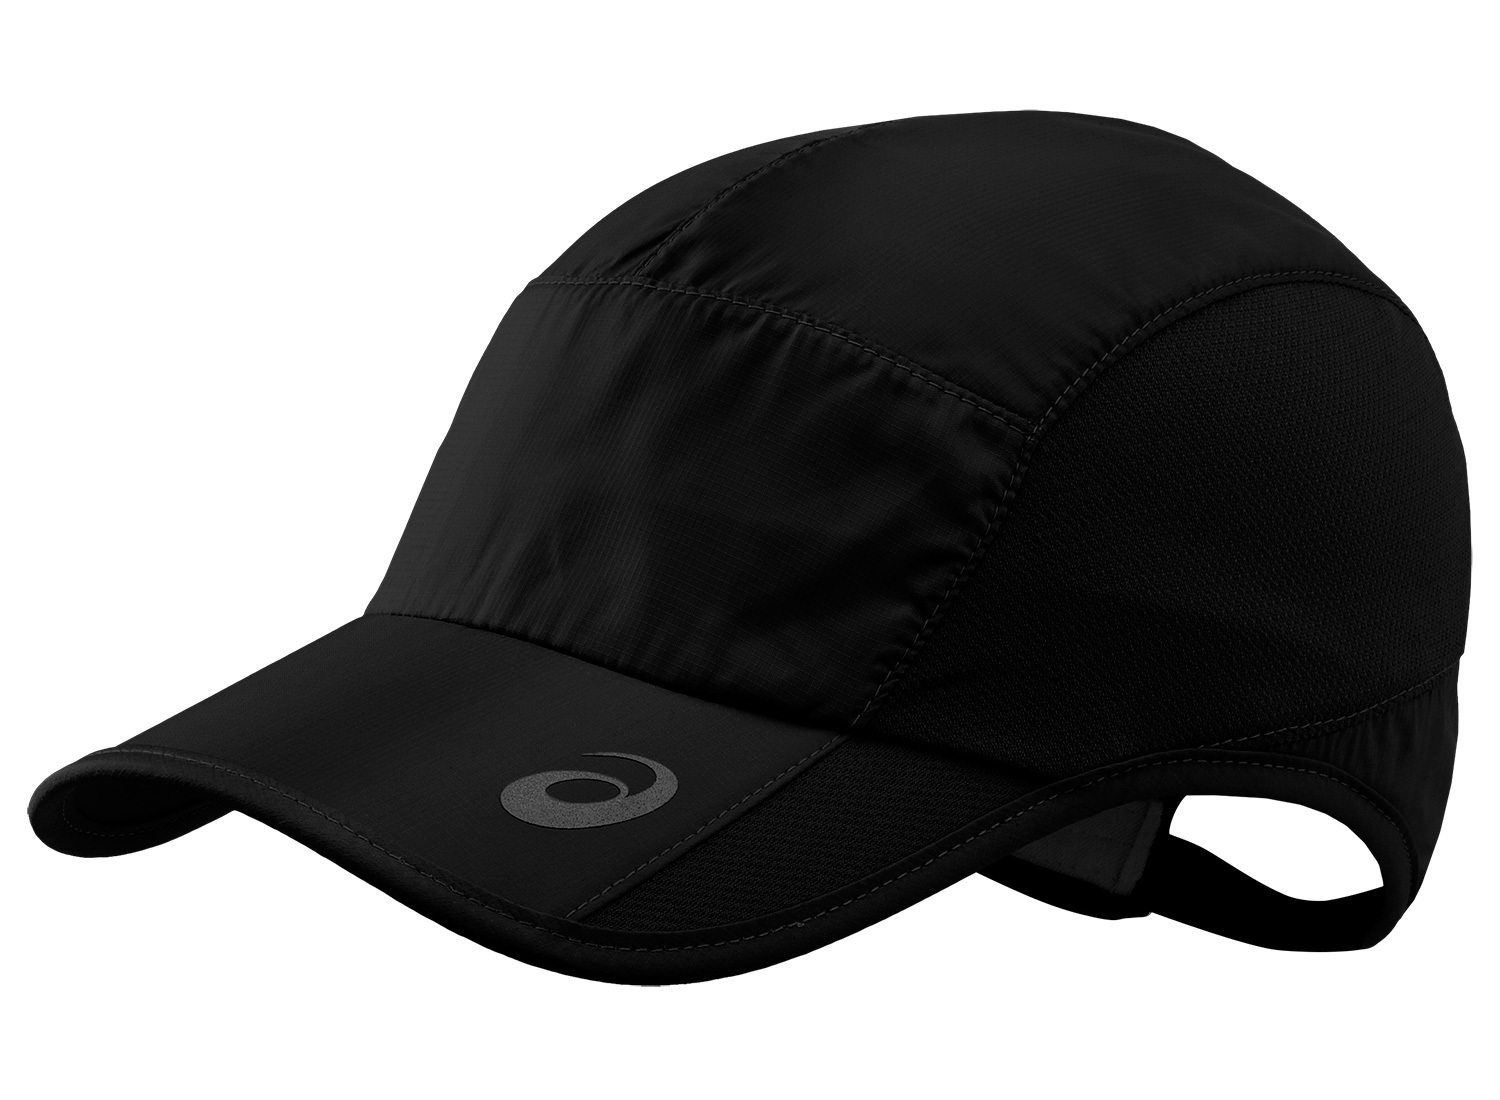 Кепка для бега Asics Performance Cap (132059 0904) черная фото